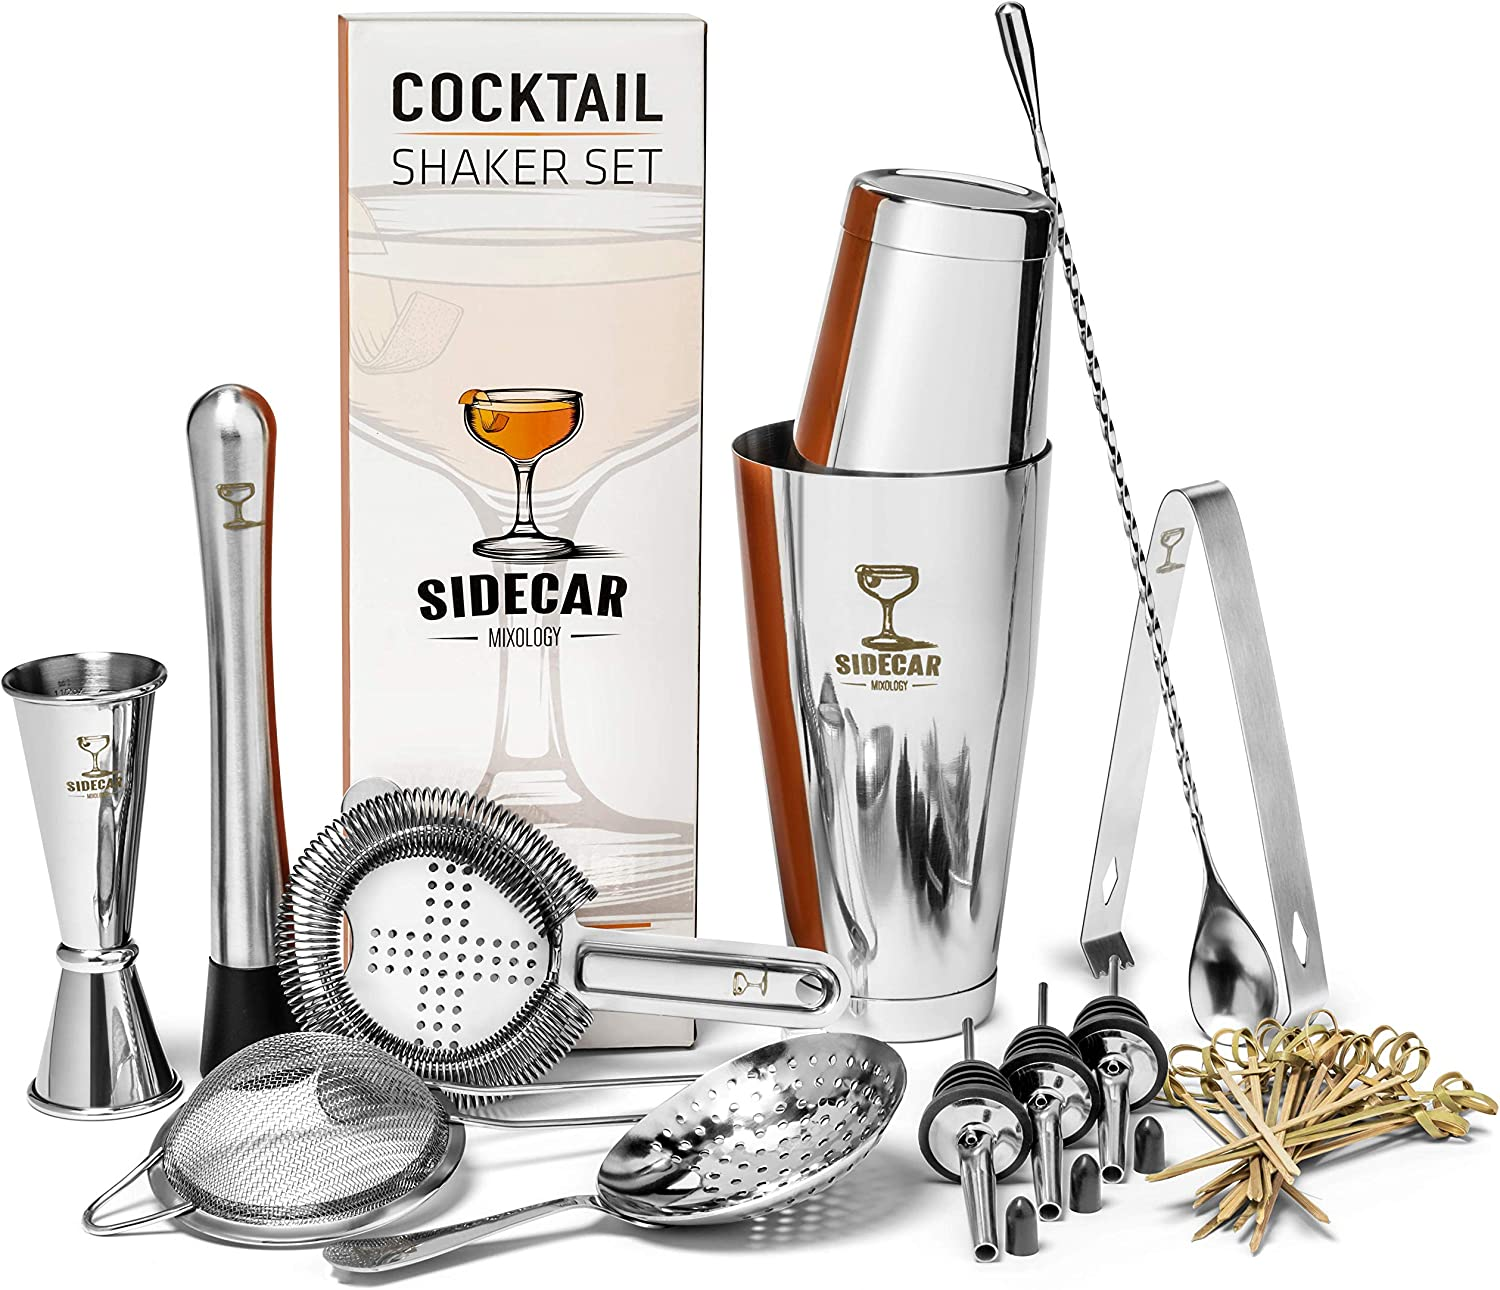 Cocktail Shaker Set by Sidecar Silver Tampa Mall 16 Piece Mixology: Premium Max 80% OFF